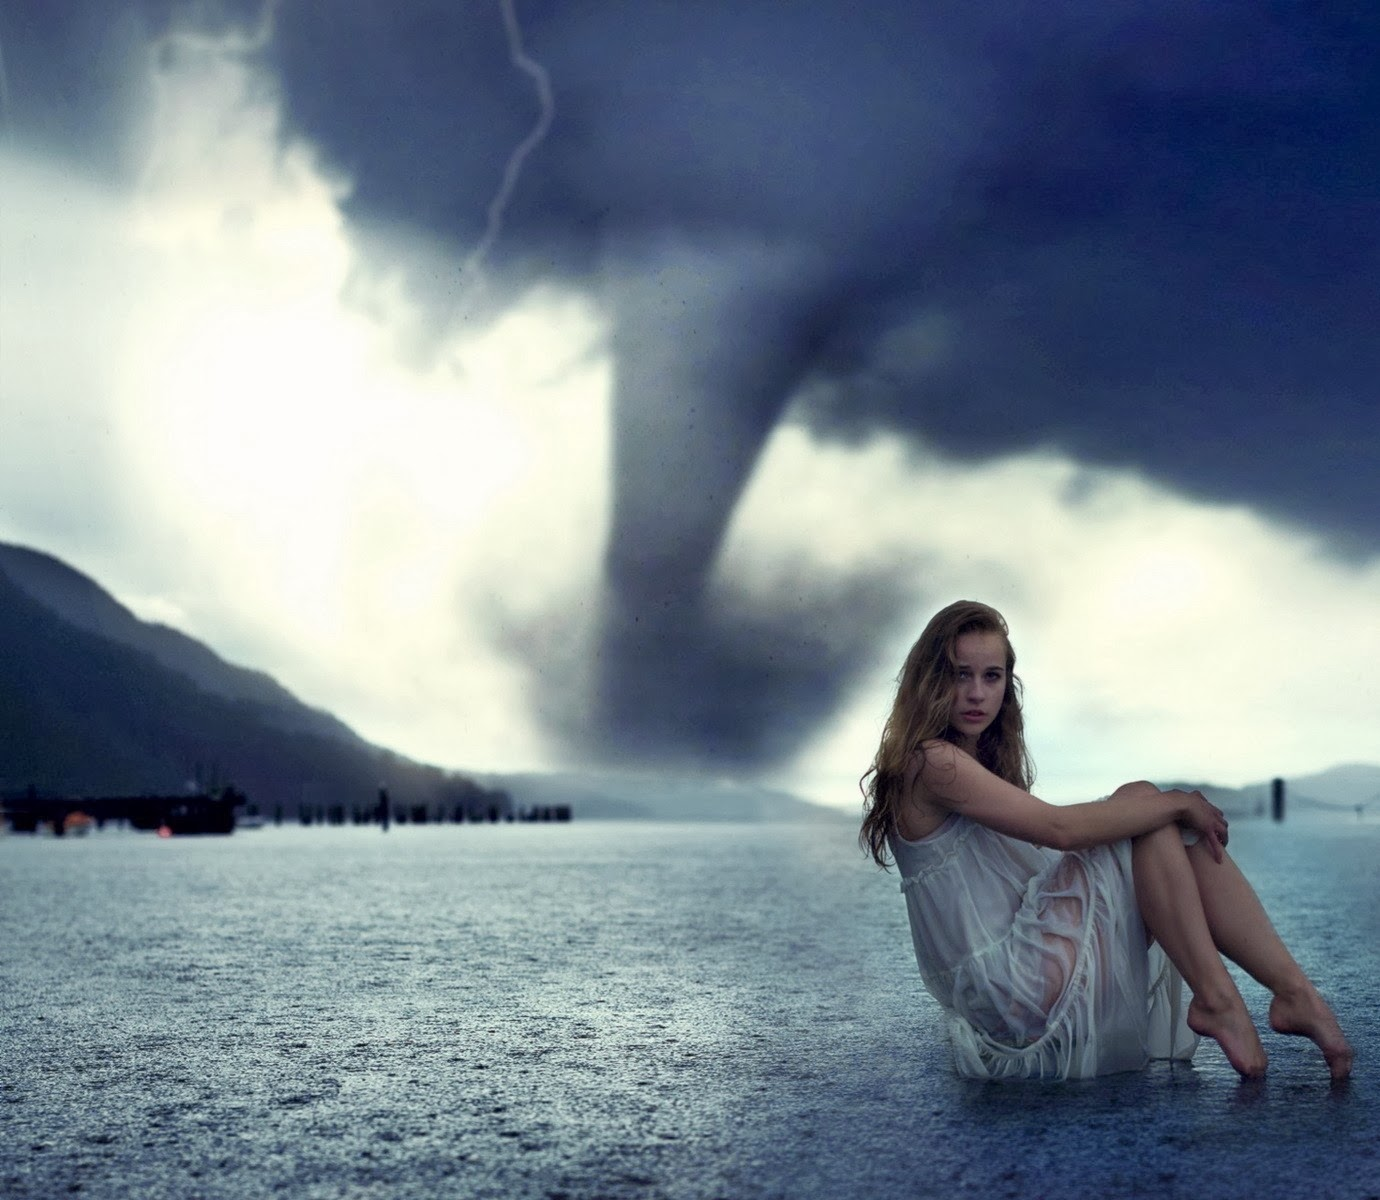 Women storm models, weather tornadoes photo manipulations